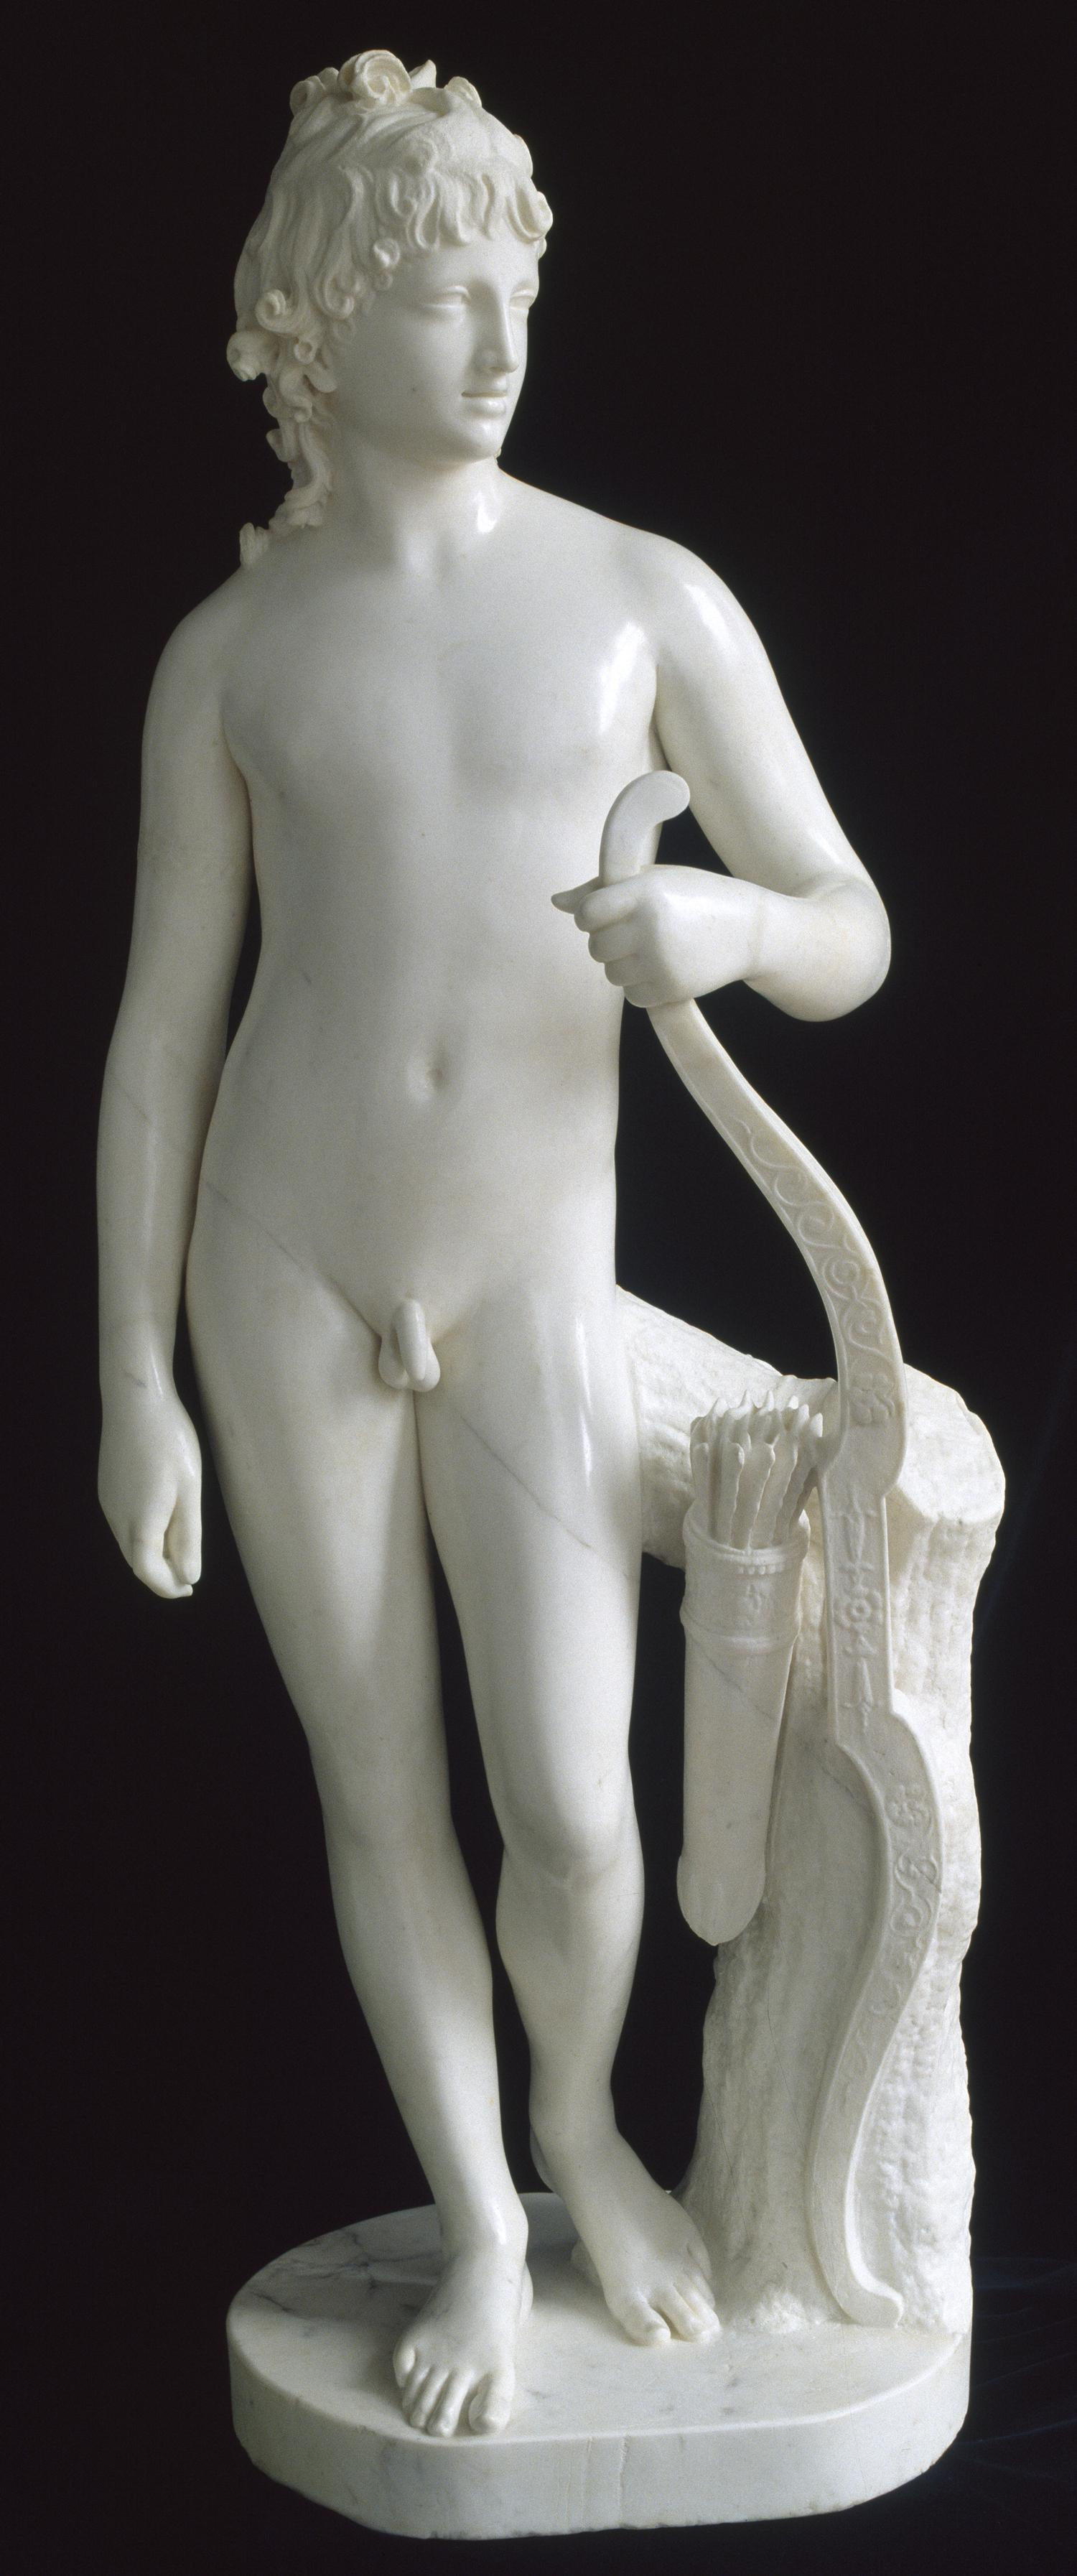 Antonio Canova (1757-1822), 'Amorino', 1789-1791. © National Gallery of Ireland